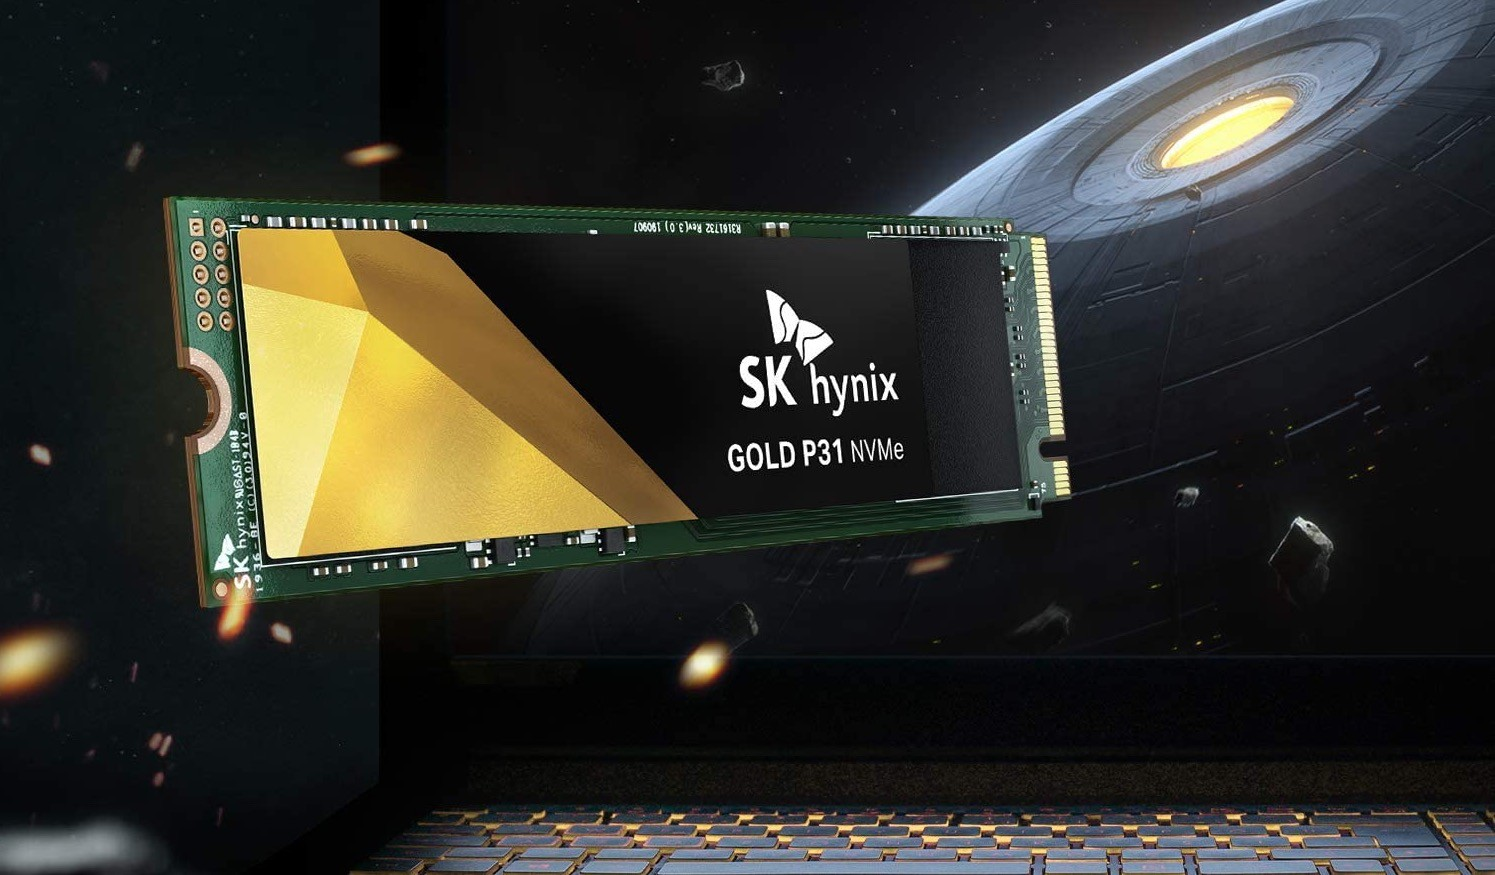 SK Hynix Gold P31 1TB NVMe – Quick Look Review 1